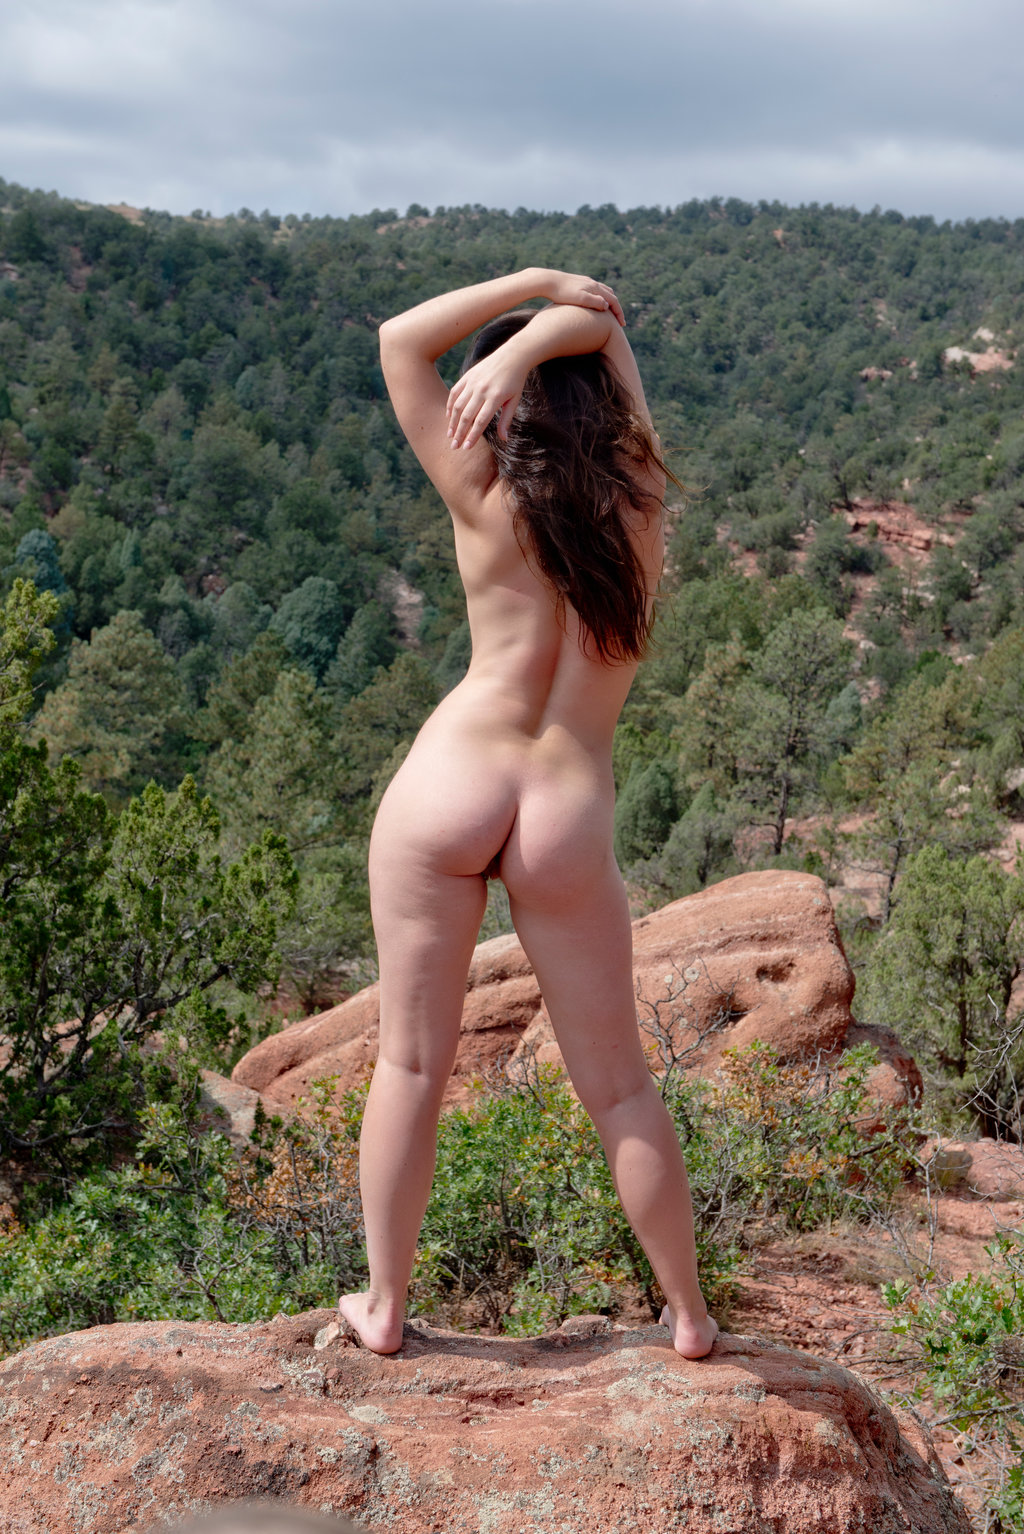 The hedonistic pleasures of being naked but comfortable